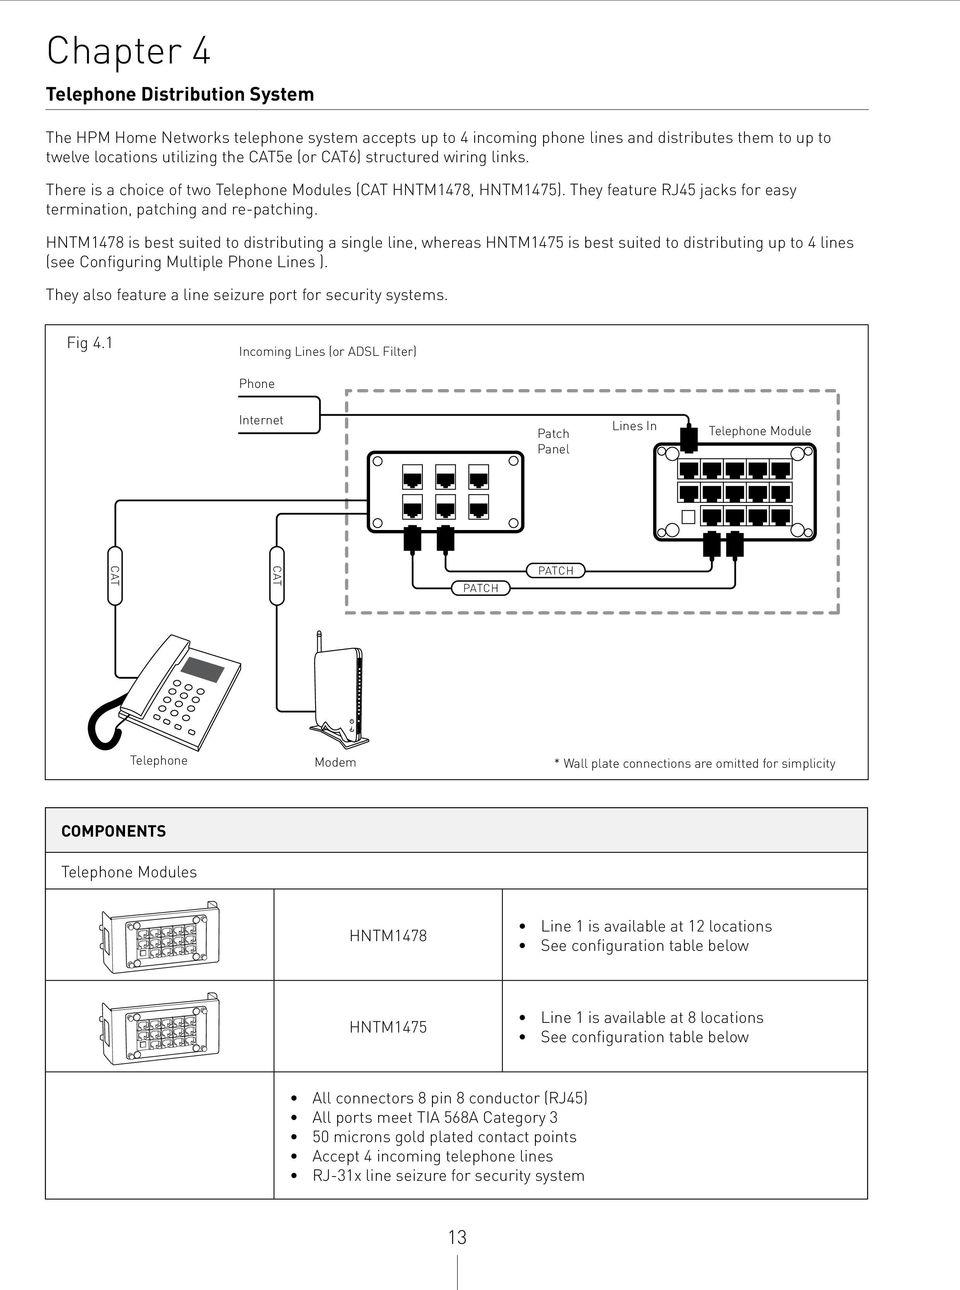 Hpm Home Networks Installation Manual Pdf Wiring Phone Line Seizure Jack Together With Telephone Socket Hntm1478 Is Best Suited To Distributing A Single Whereas Hntm1475